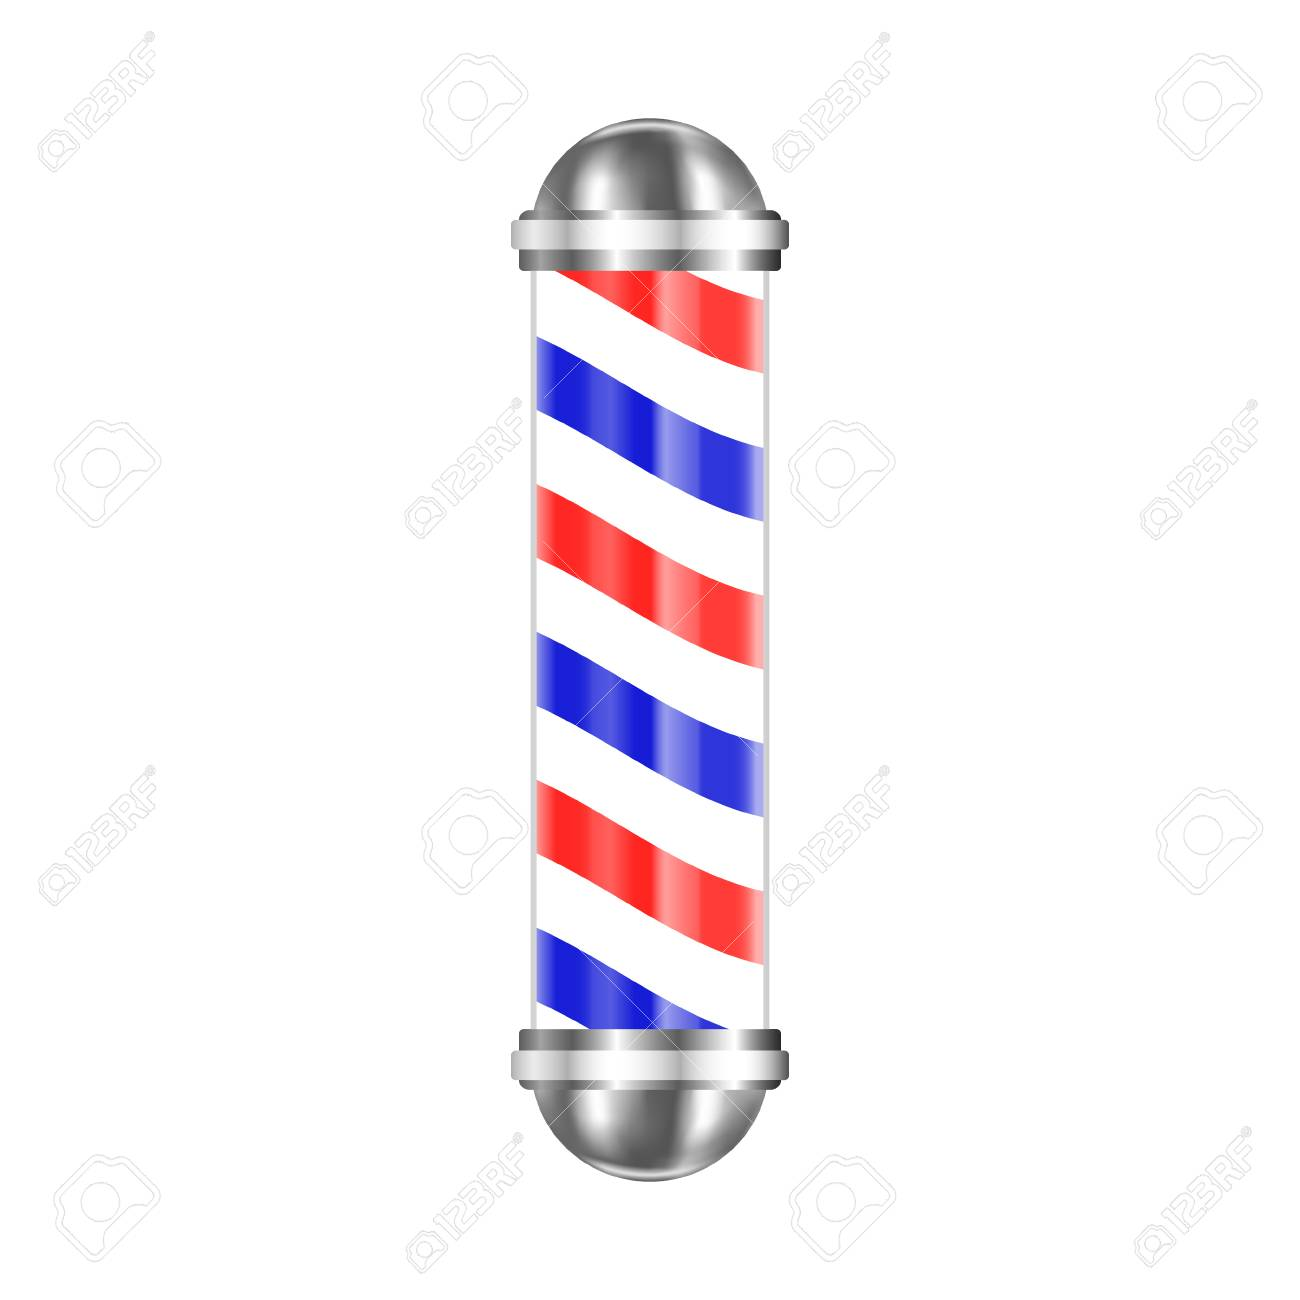 Barbershop pole isolated on white background. Vector illustration. - 80879065